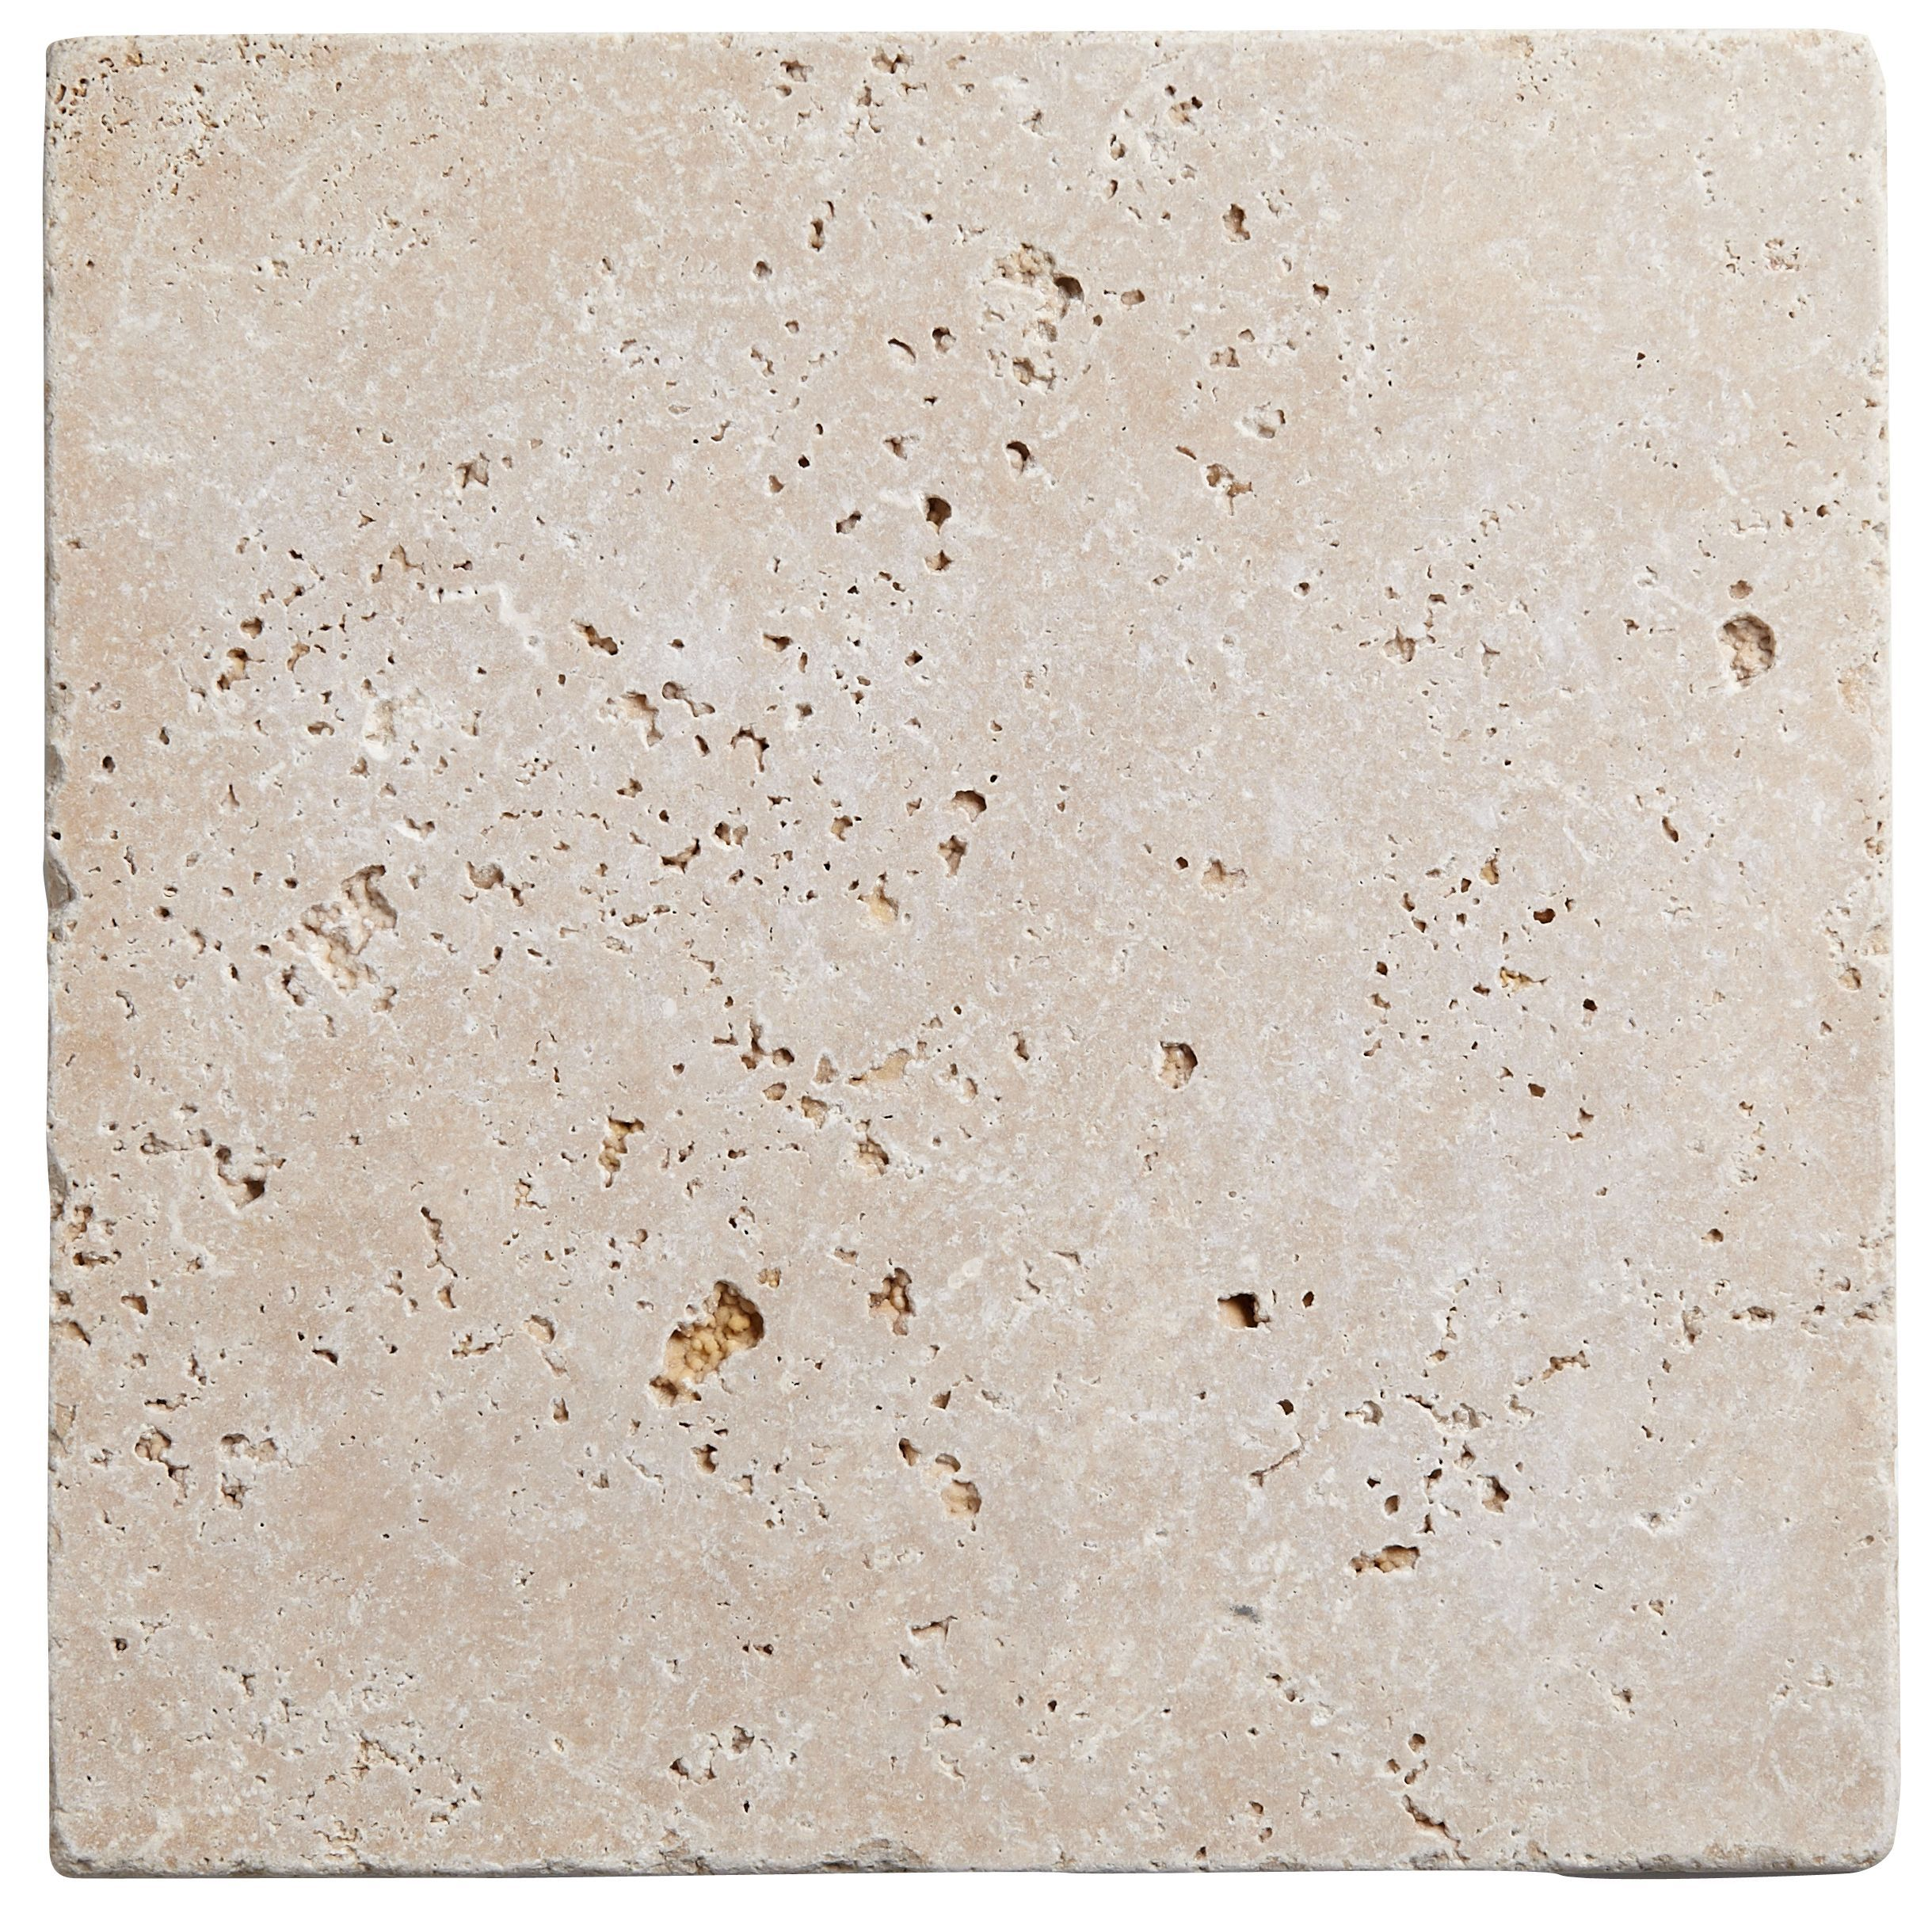 Tumbled Light Beige Stone Effect Travertine Wall & Floor Tile, Pack Of 10, (l)305mm (w)305mm